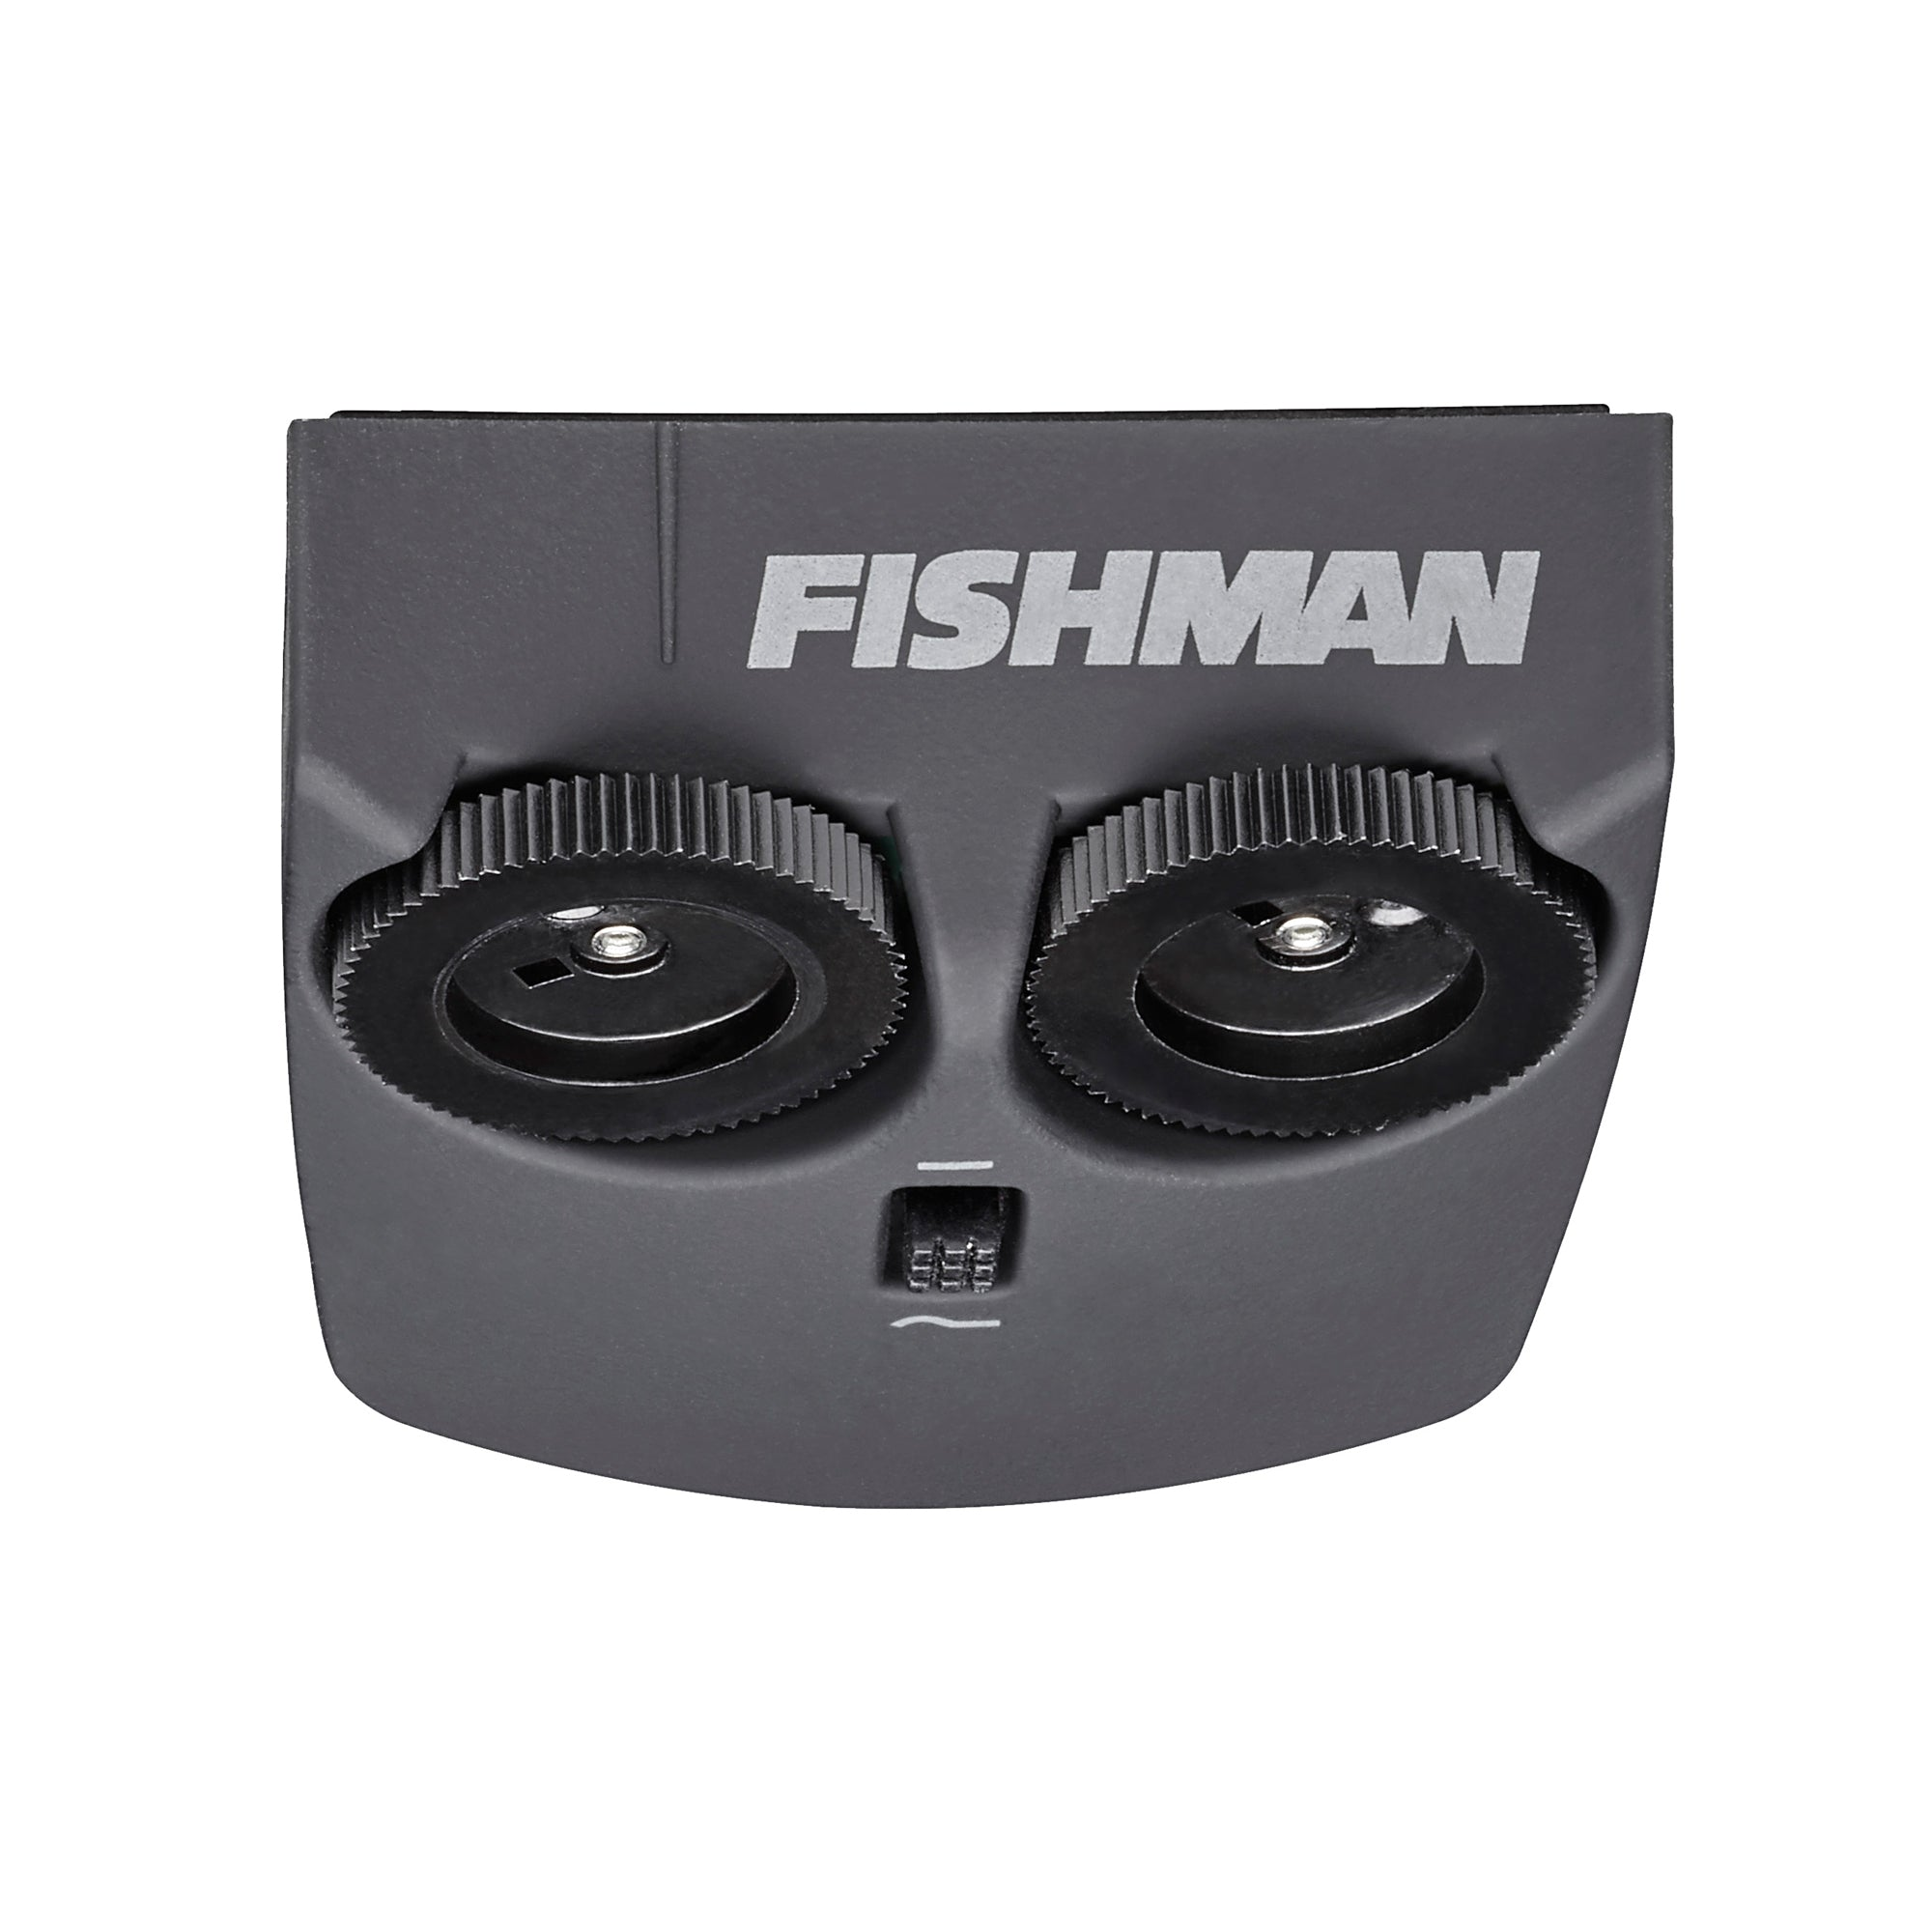 Fishman Matrix Infinity VT Mic Blend Active System Narrow Format